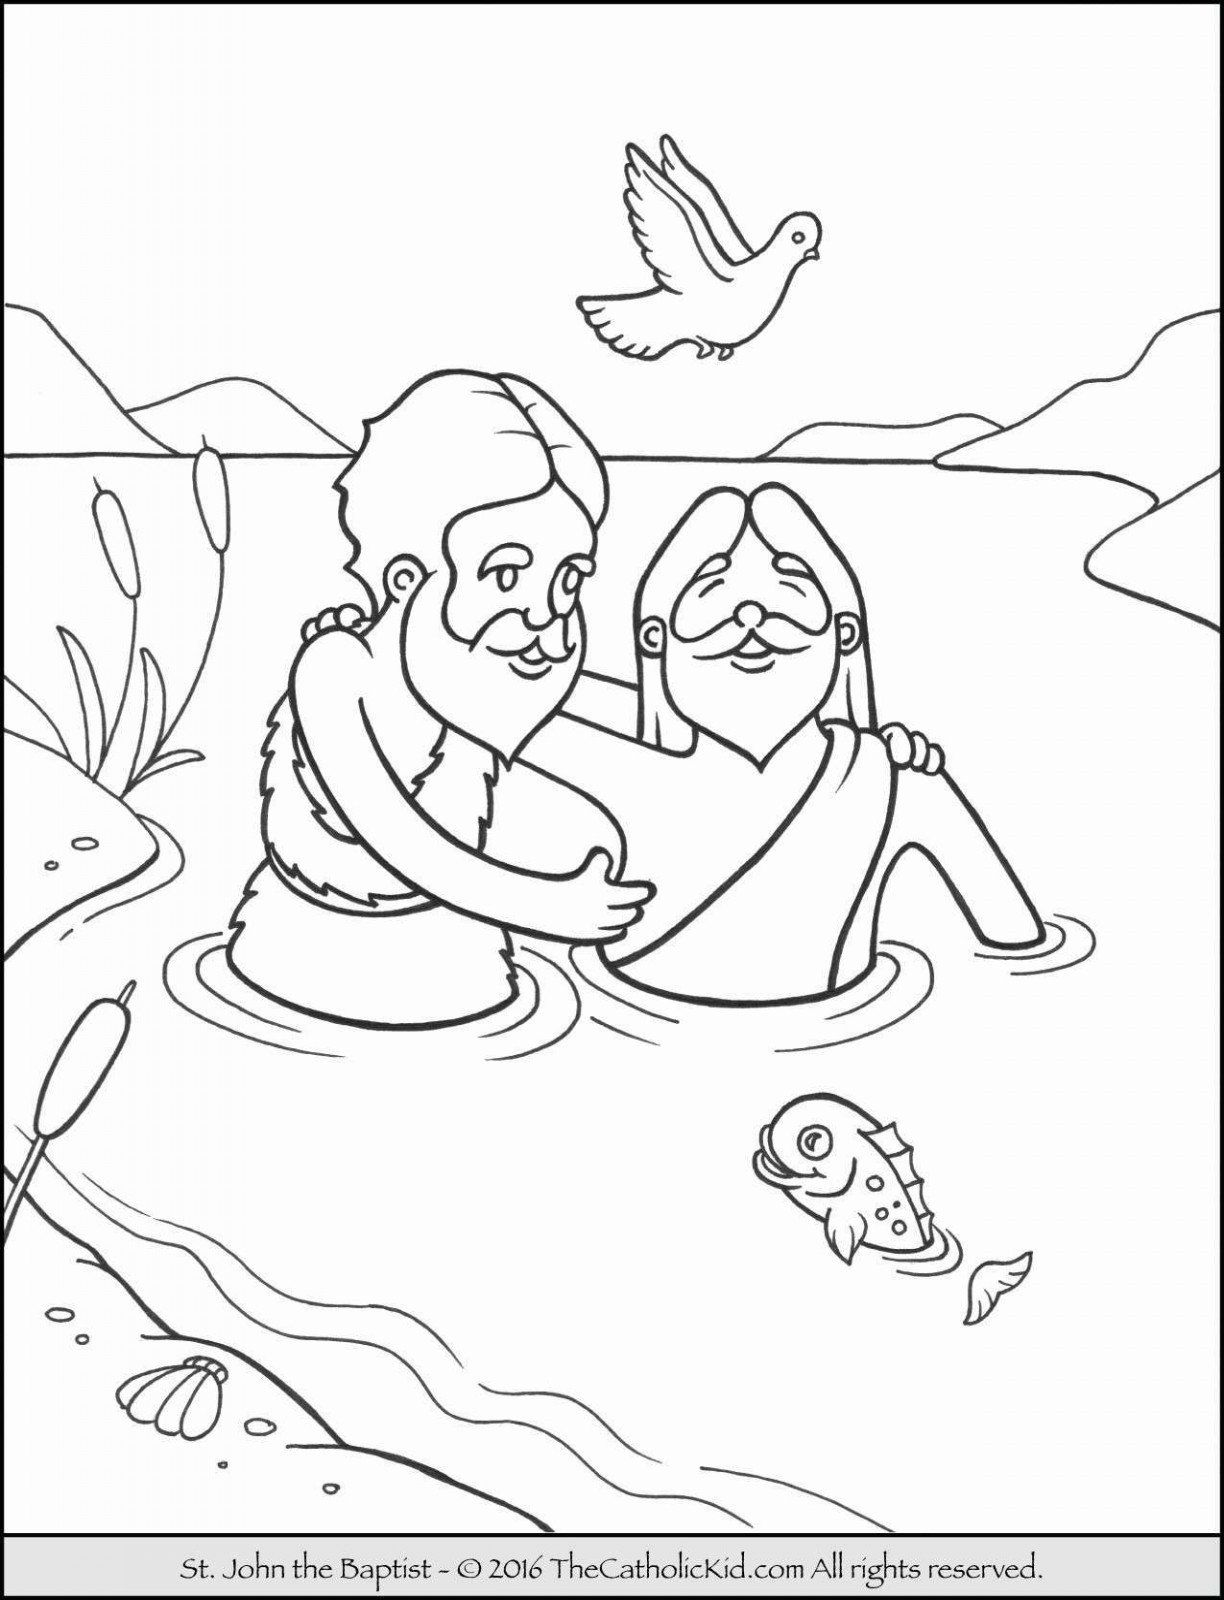 Equestria Girls Coloring Pages Elegant Flower Coloring Pages Printables 38 Equestria Girls Rainbo Jesus Coloring Pages Fairy Coloring Pages Bear Coloring Pages